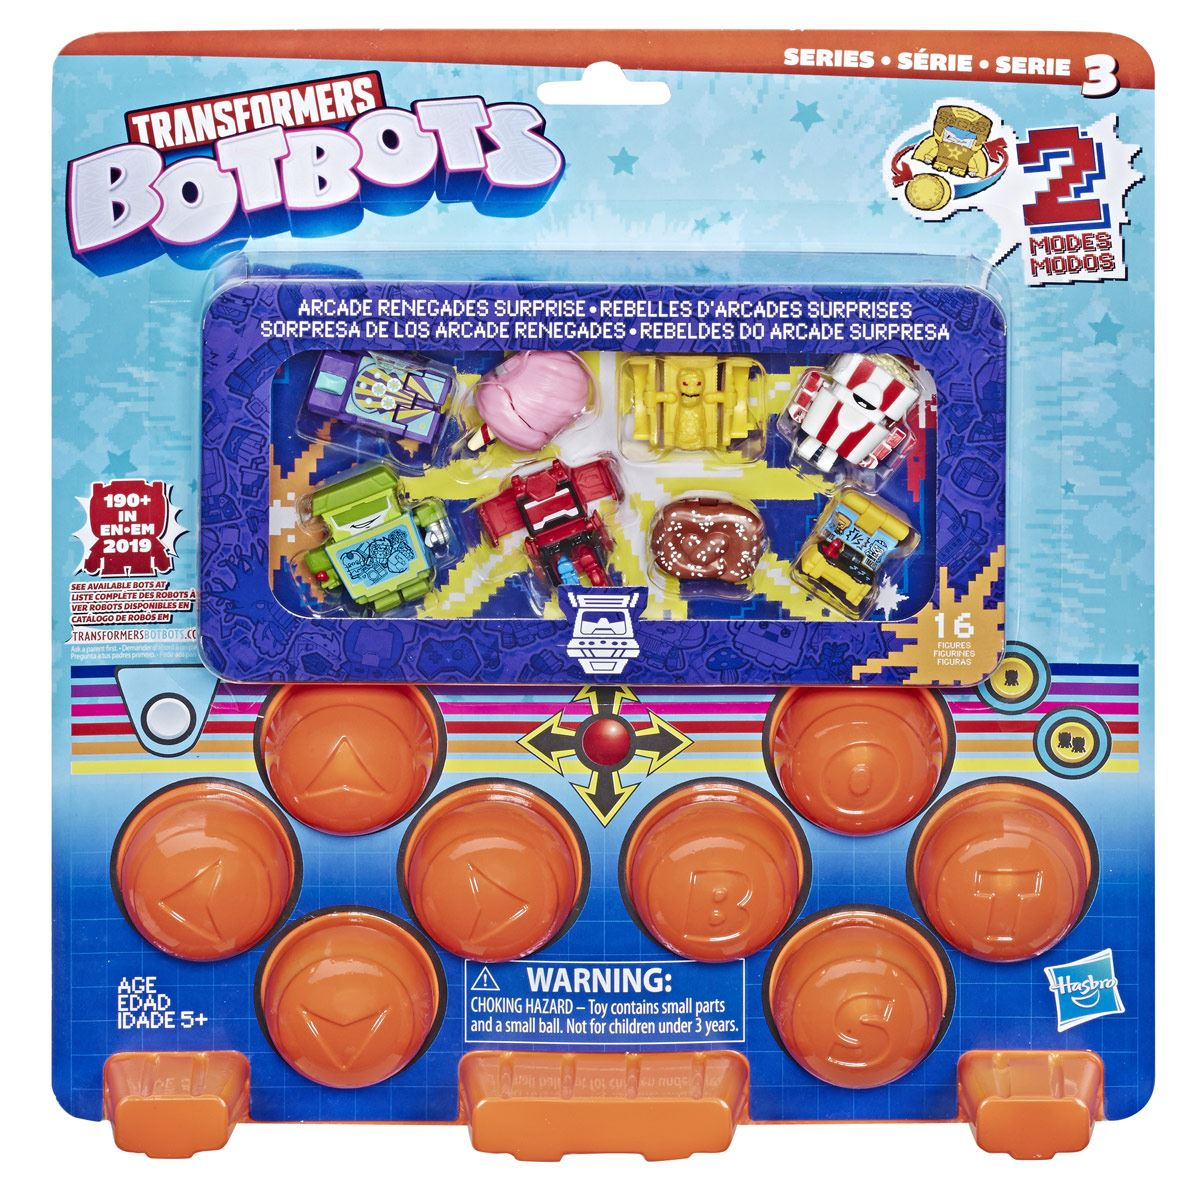 Transformers Botbots 16 Pack